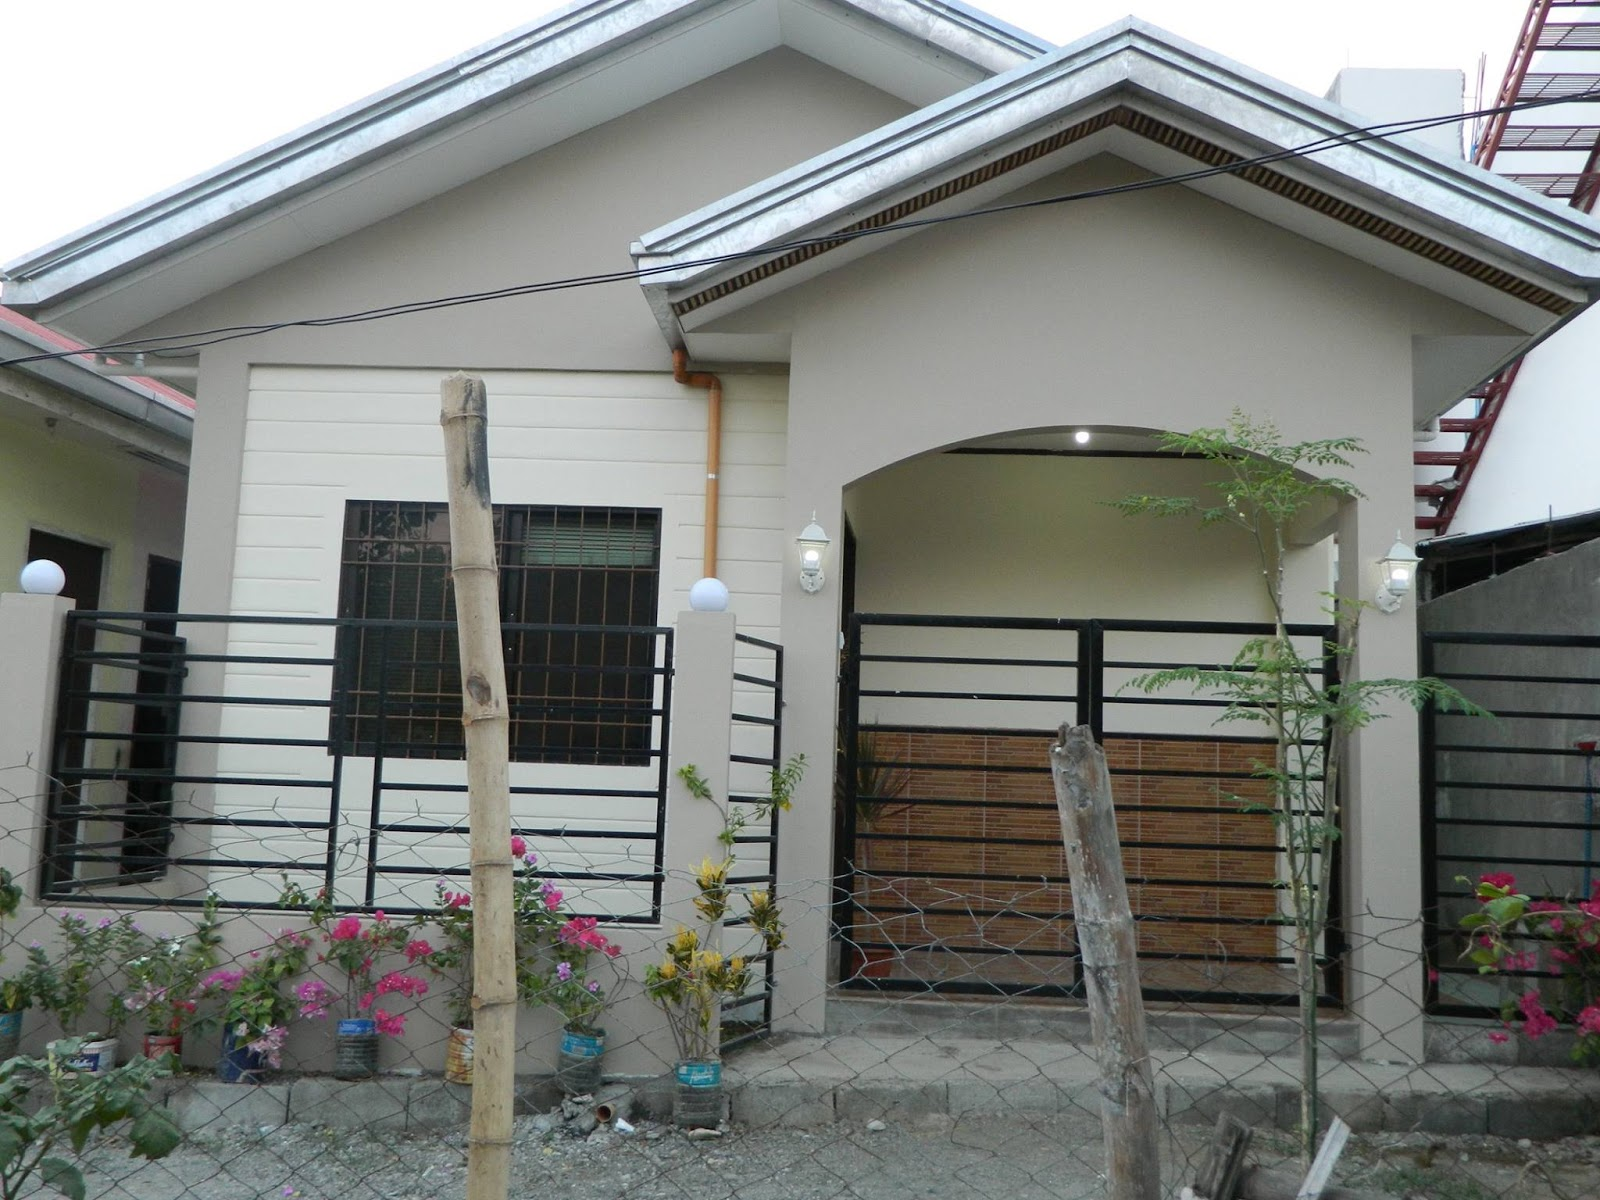 In photos ofw built his p500k dream house a small and for House plans that cost 150 000 to build